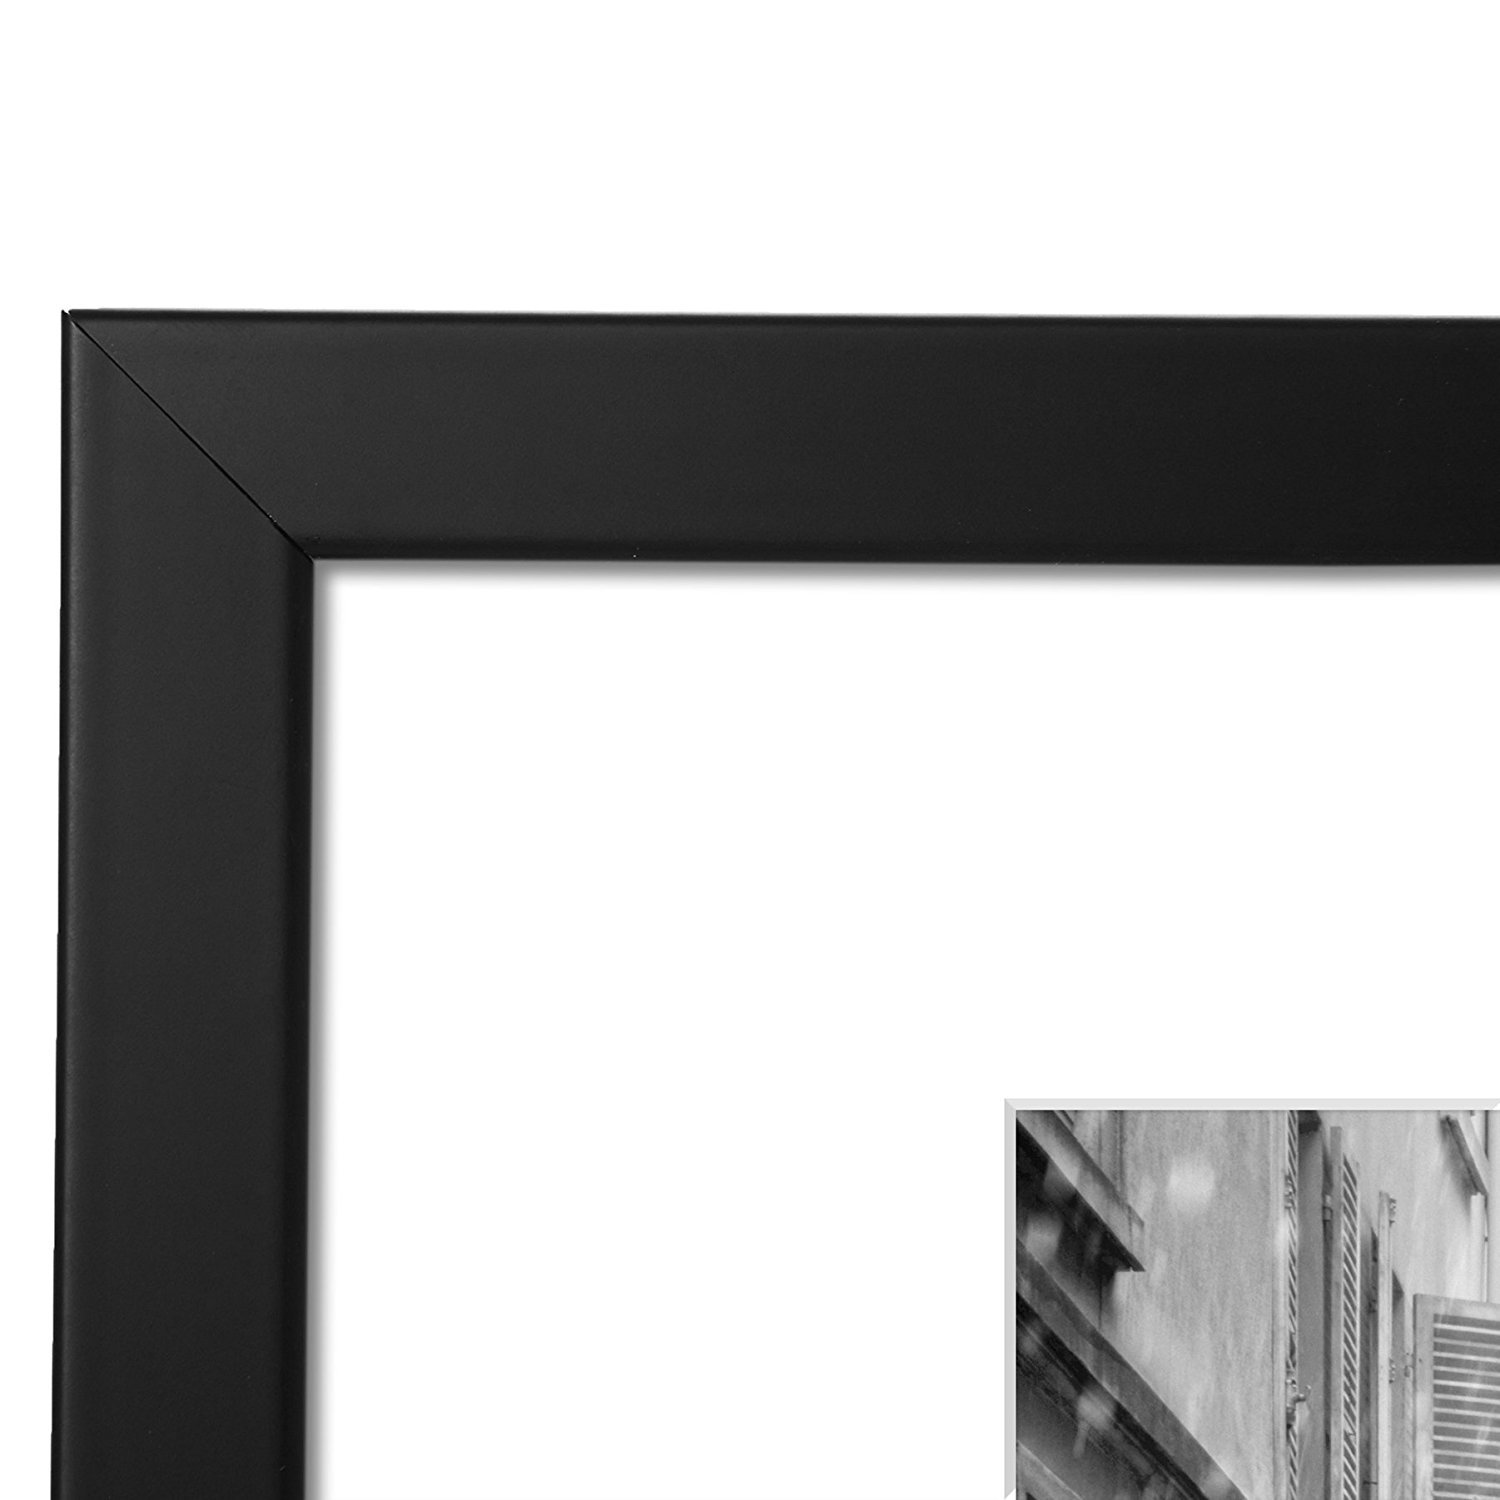 Americanflat 2 Pack - 11x14 Black Picture Frames - Made to Display Pictures 8x10 with Mats or 11x14 Without Mats - Wide Moldings by Americanflat (Image #3)